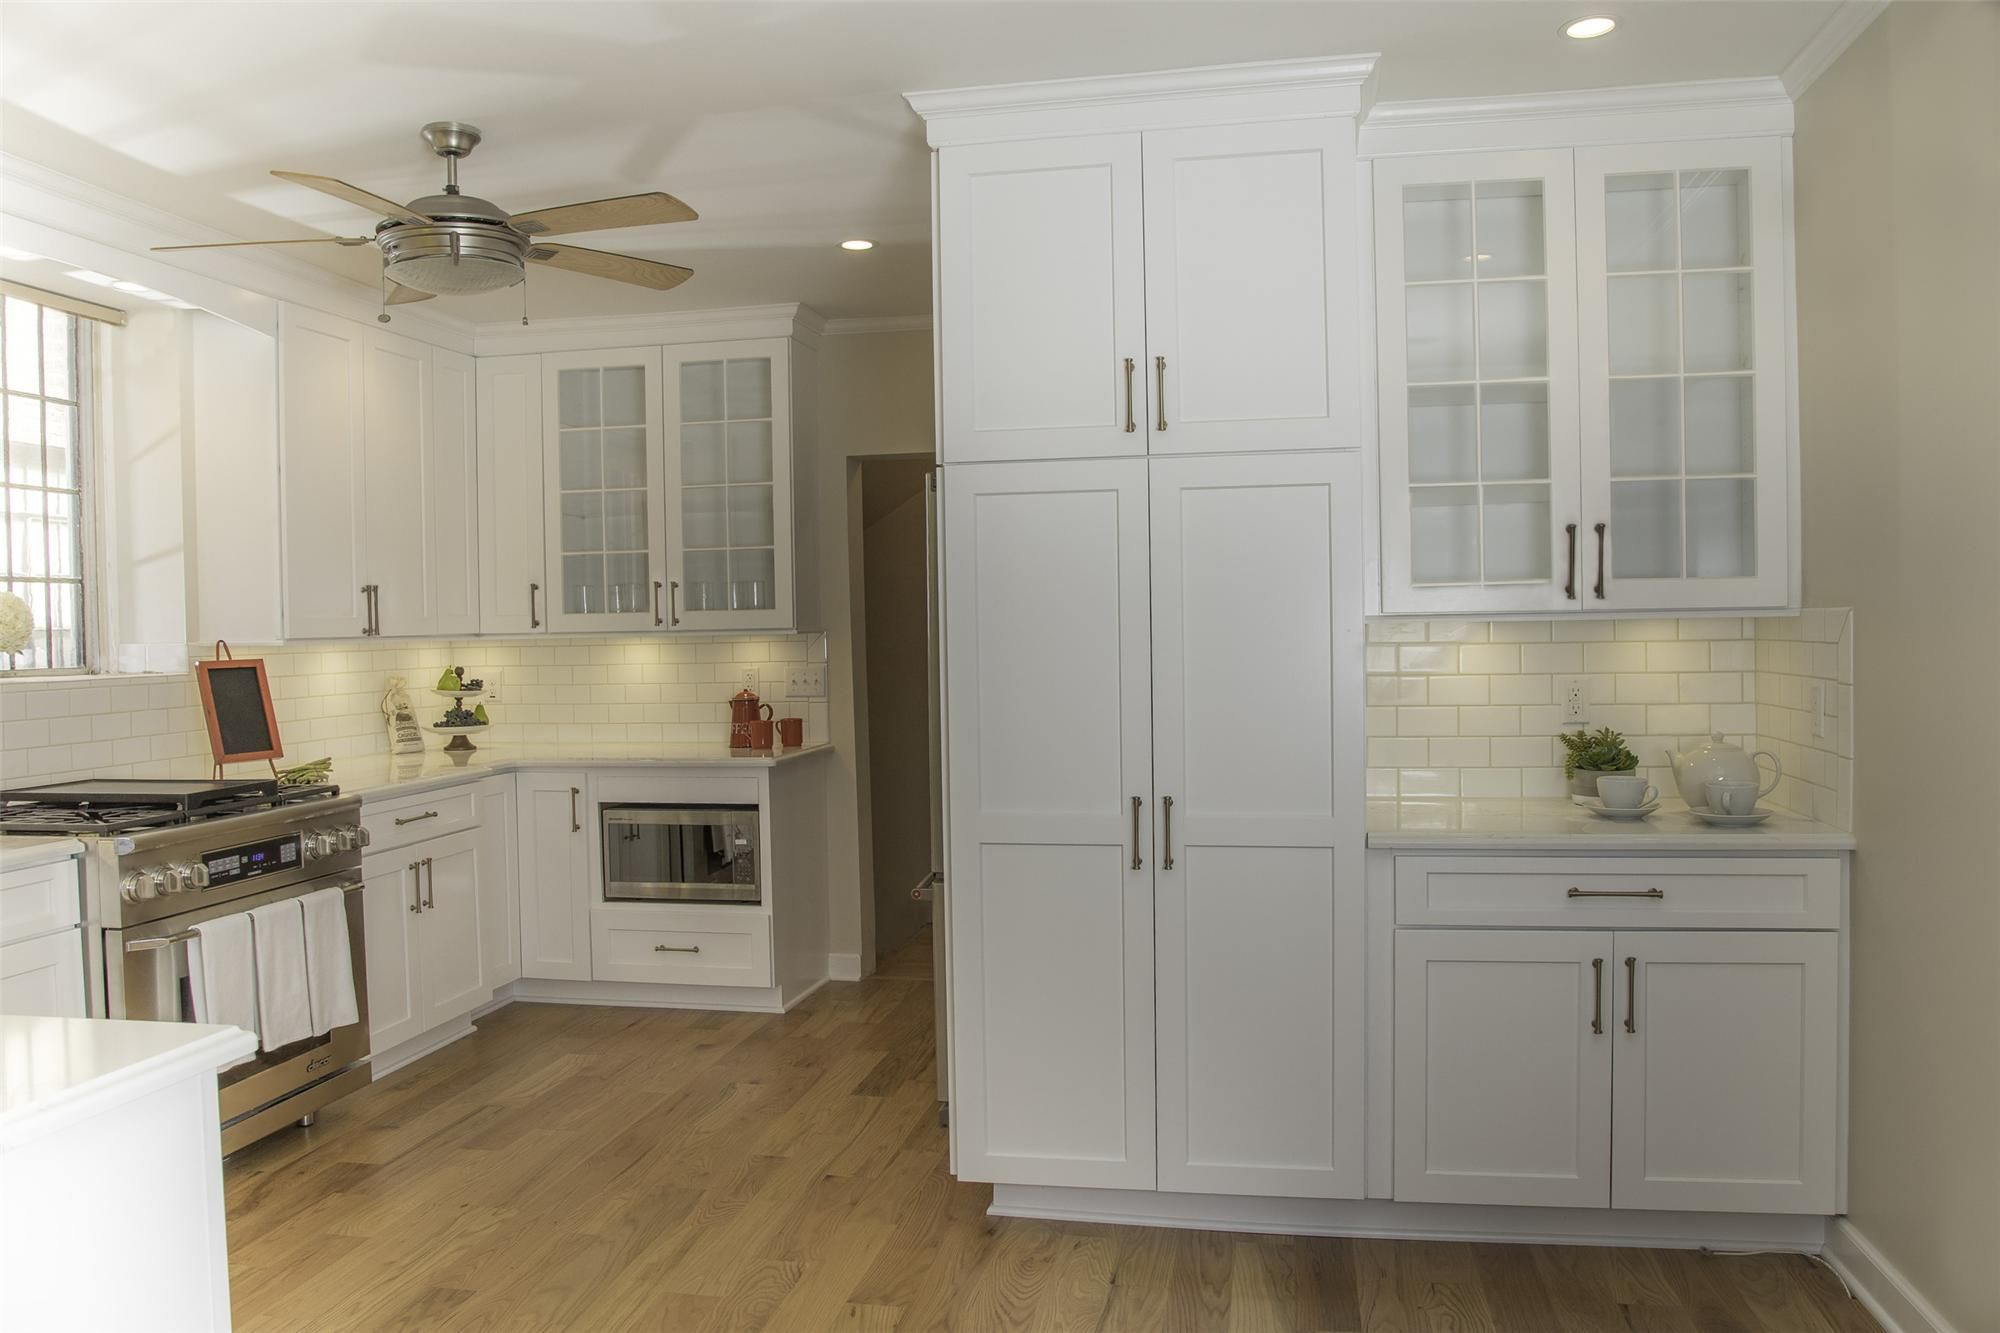 Legacy Crafted Cabinets Kcma Certified Cabinets Traditional Kitchen Design Kitchen Design Kitchen